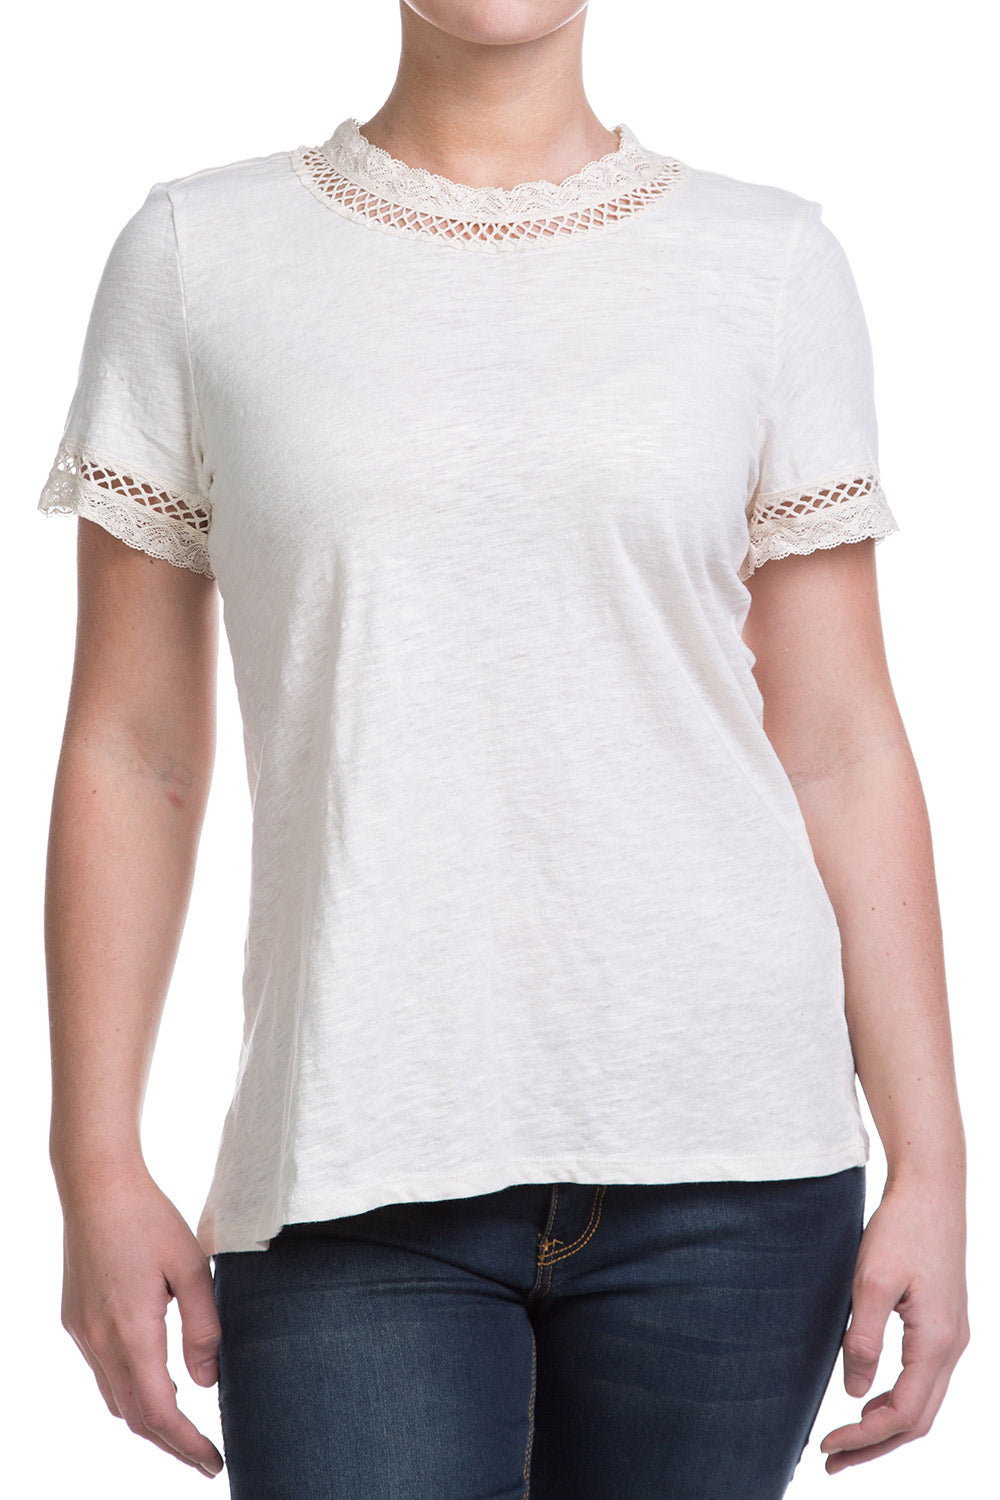 Type 3 Embrace The Lace Top